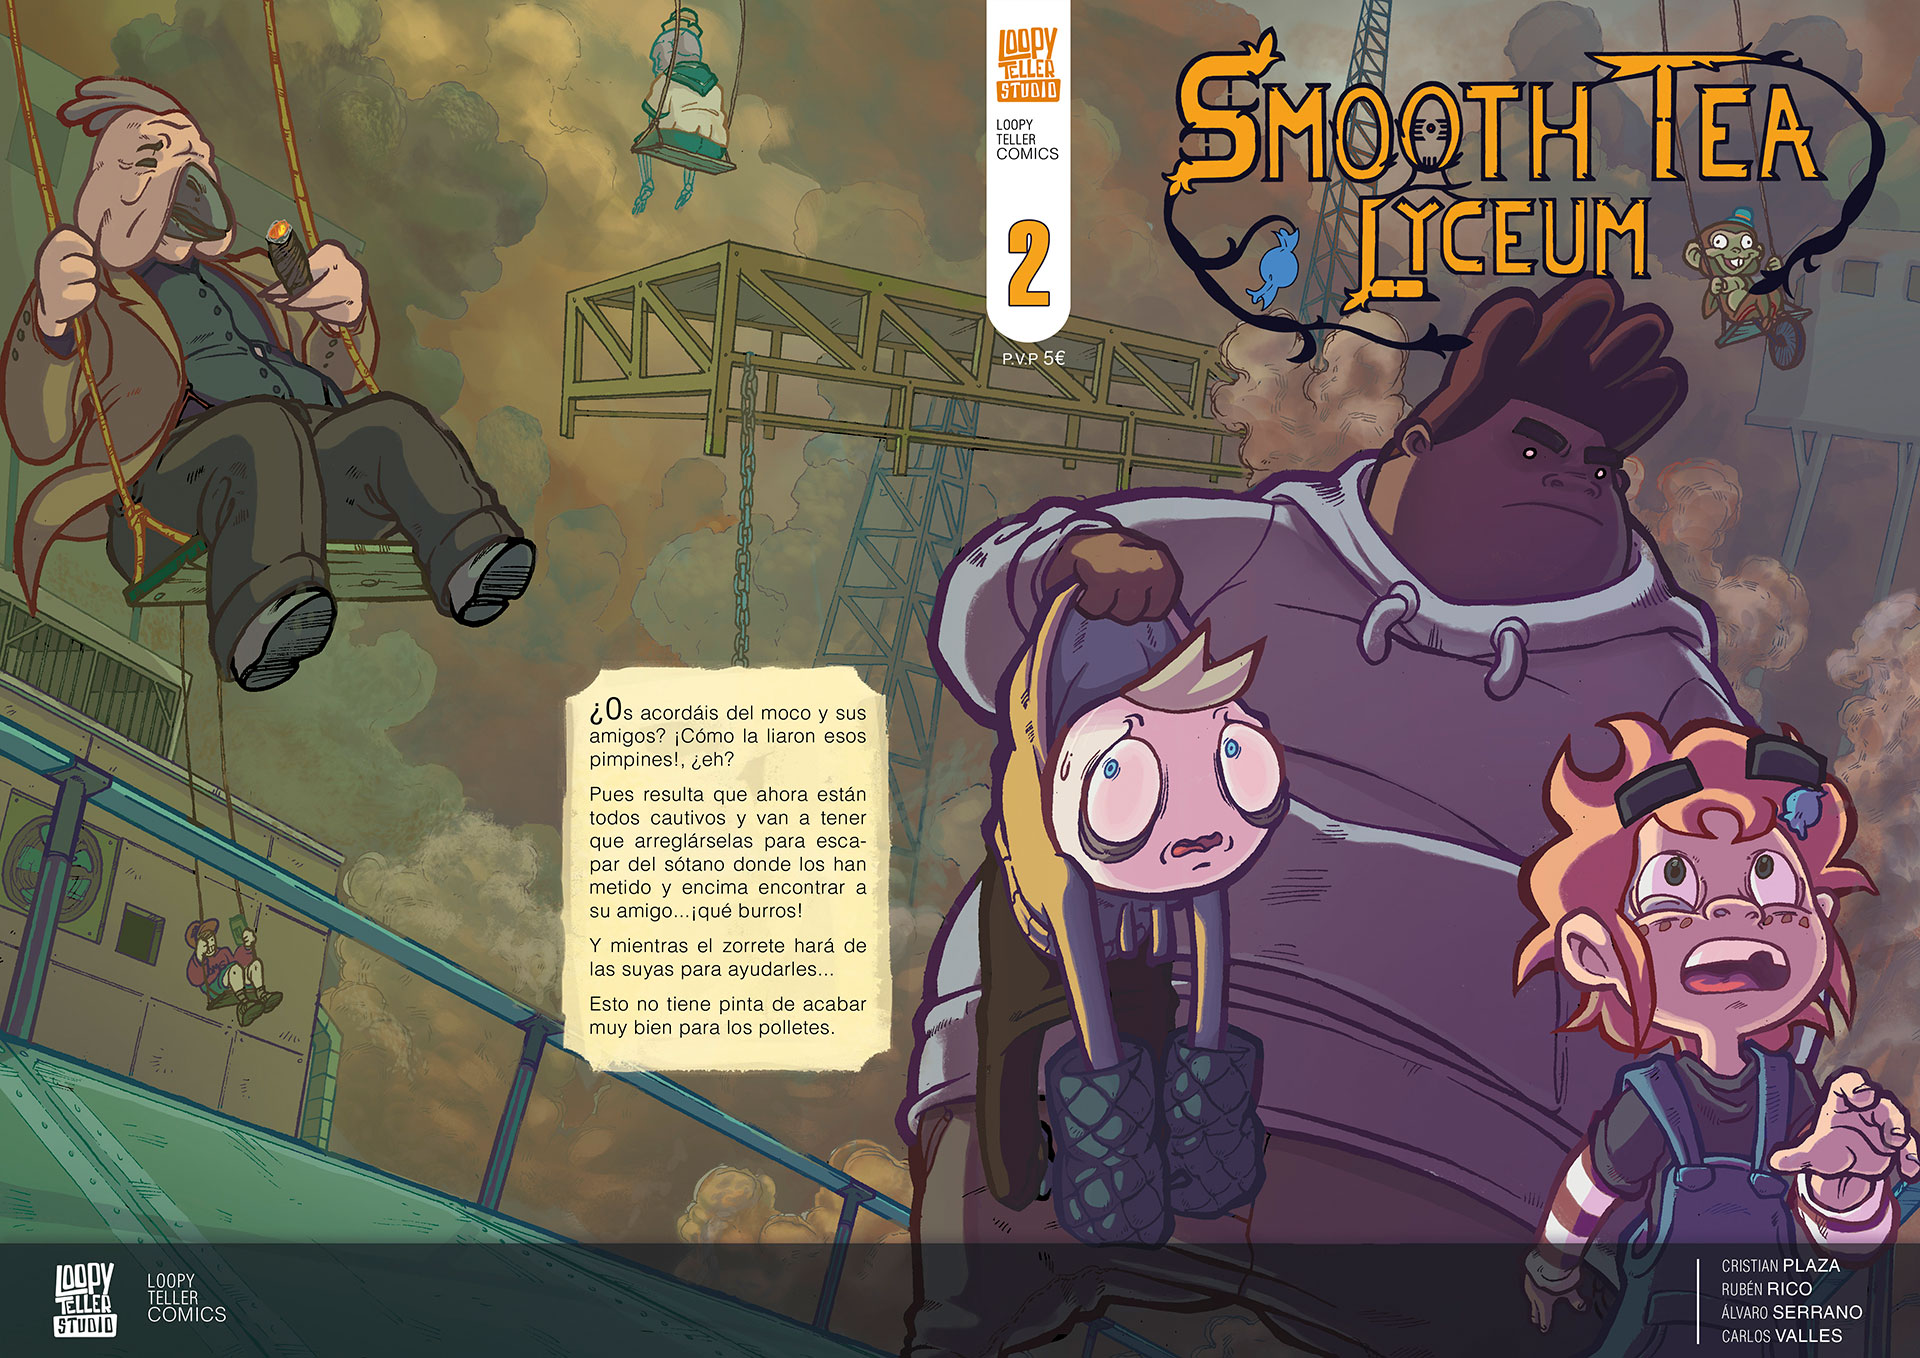 Smooth Tea Lyceum – Fanzine autoeditado